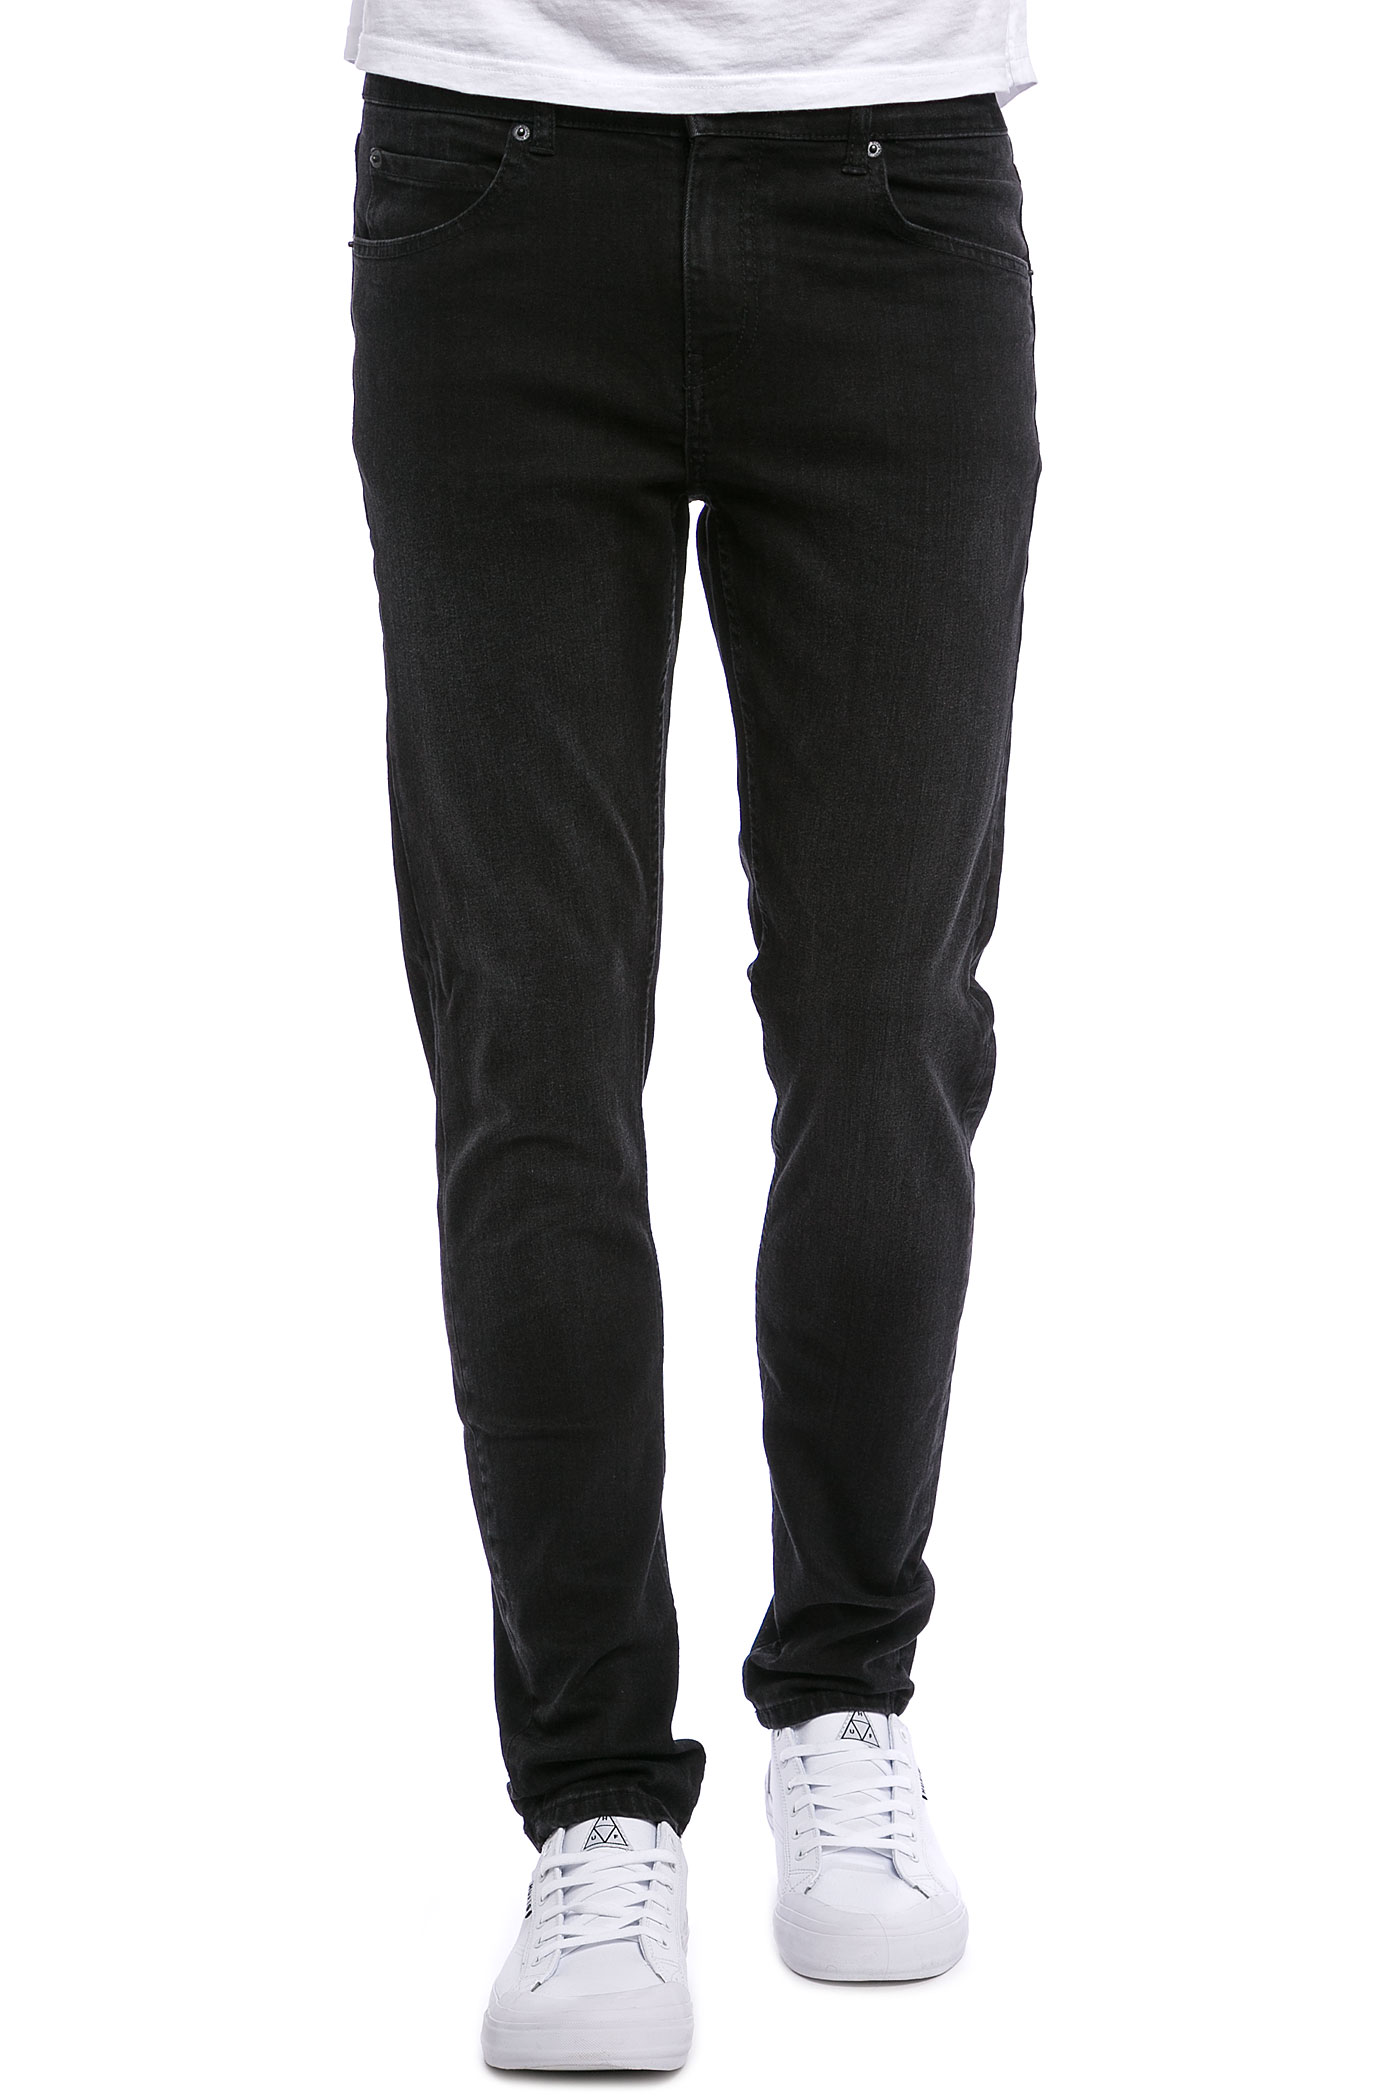 Cheap Monday Tight Jeans (black haze) buy at skatedeluxe